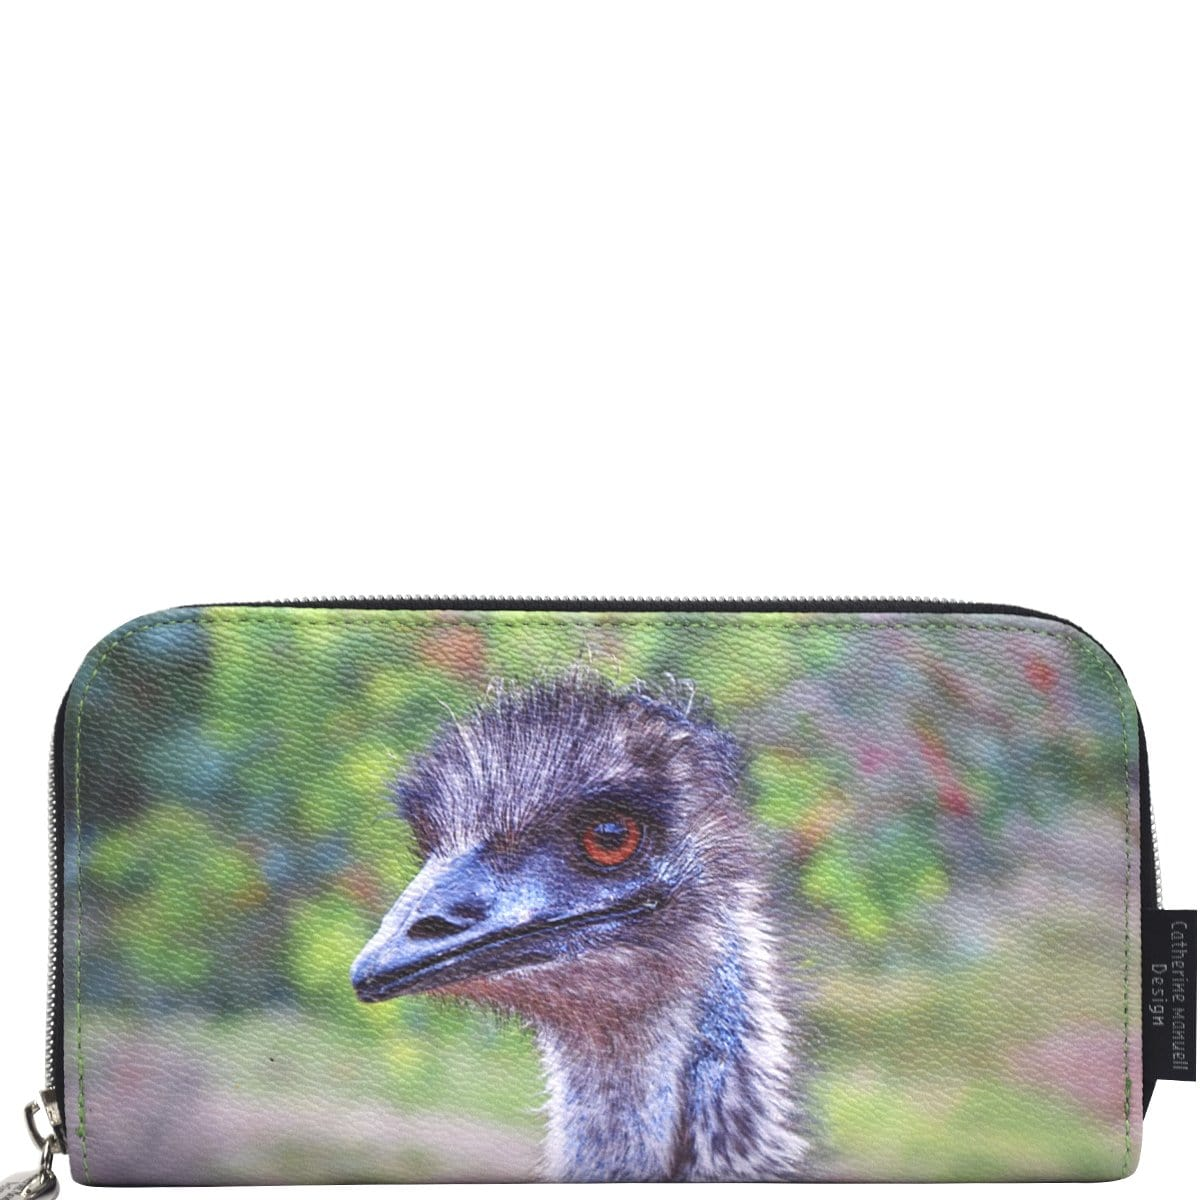 Curved Zip Section Wallet - Emu